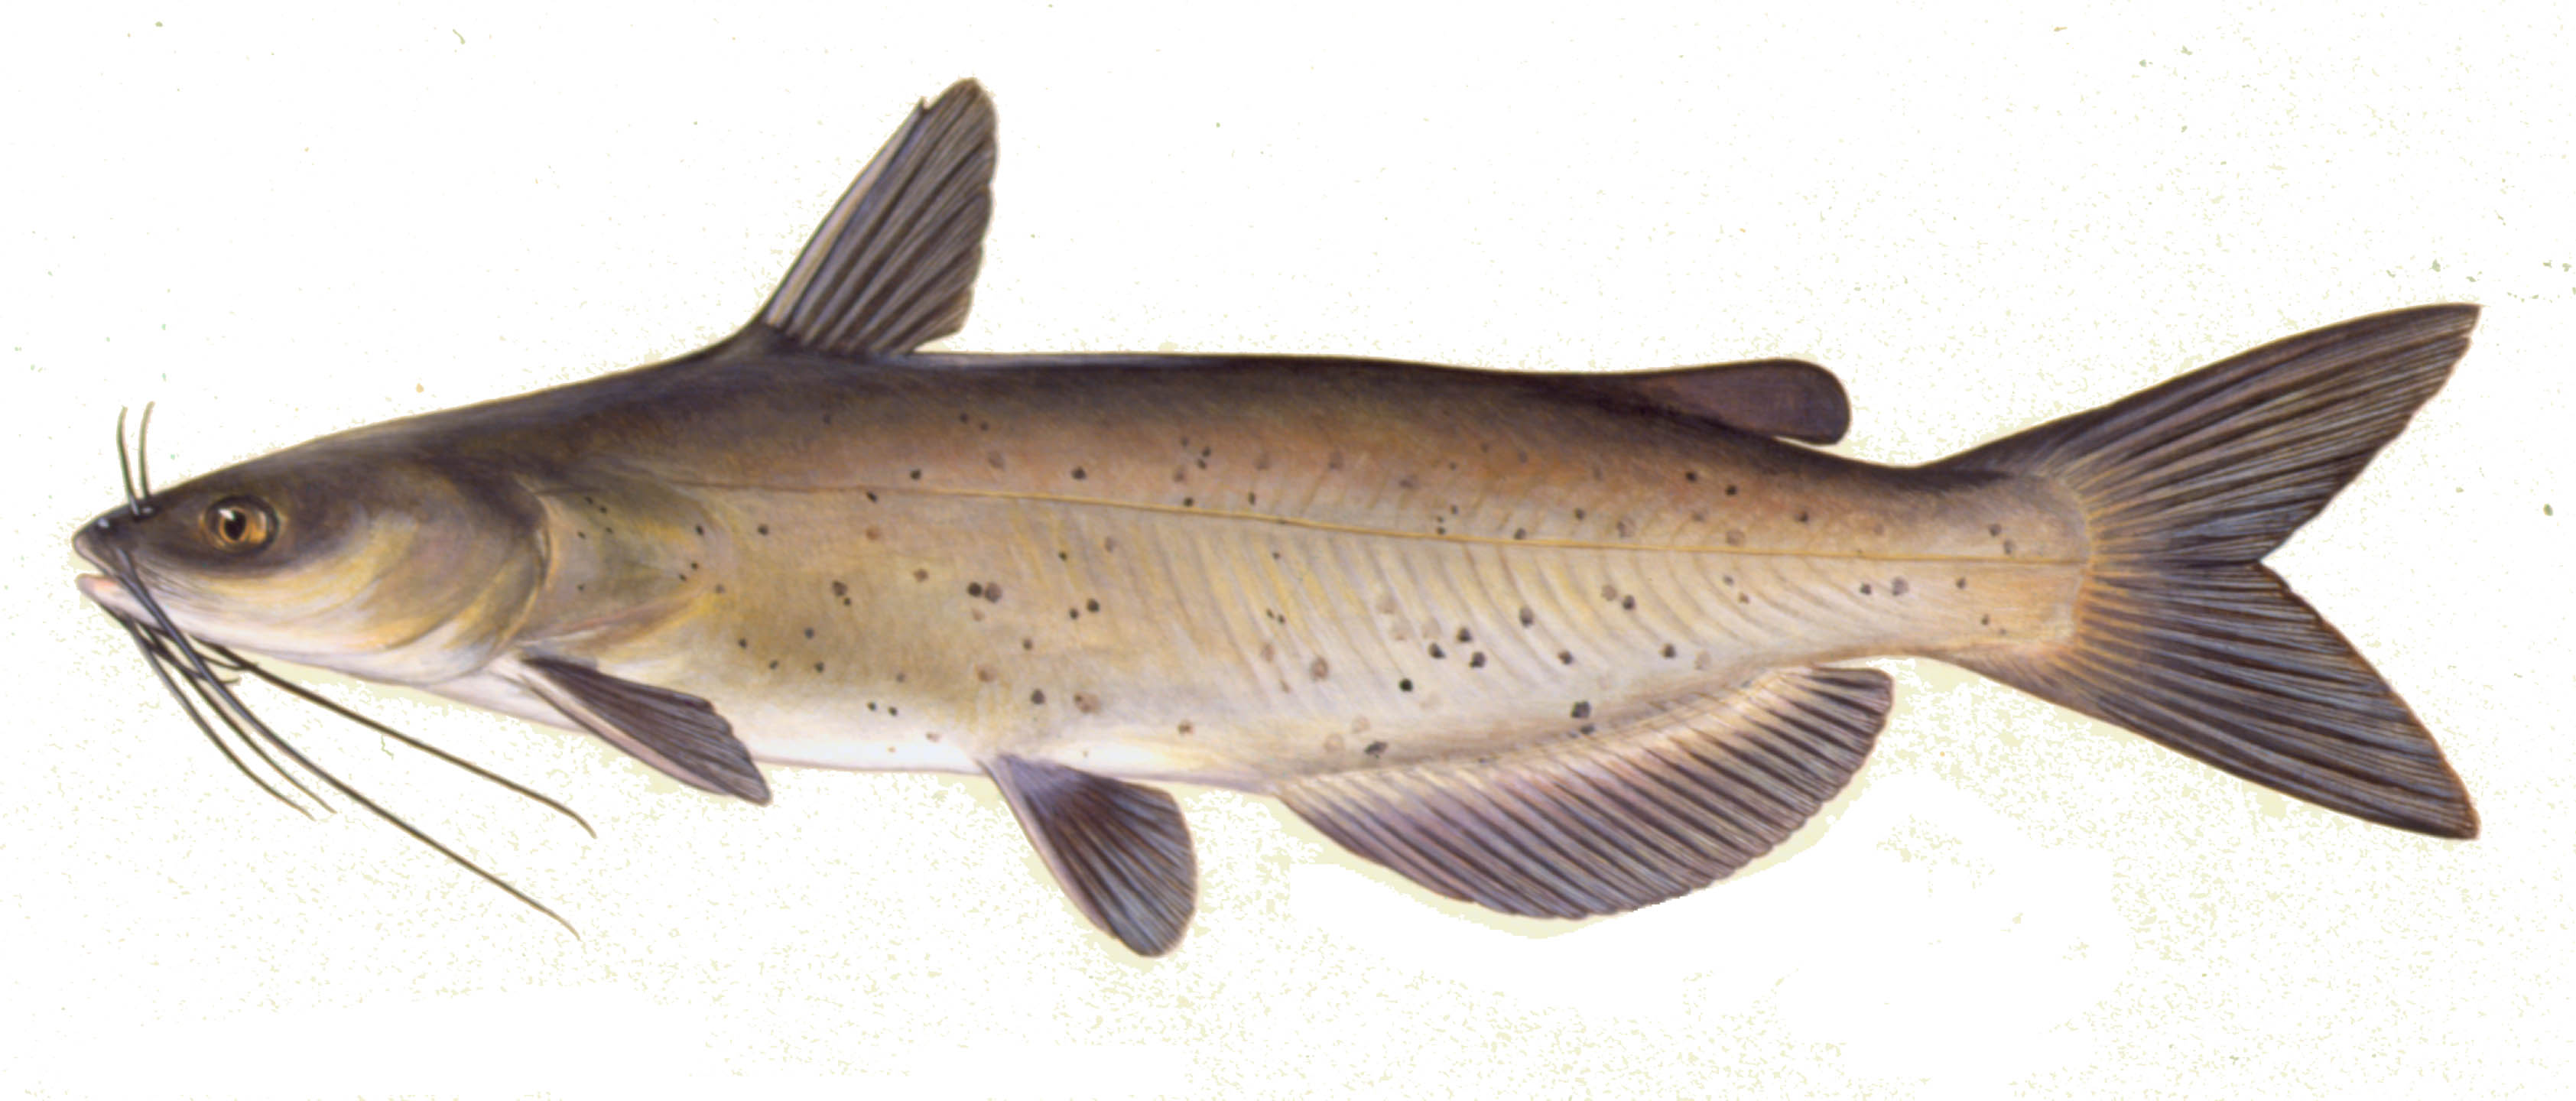 Channel Catfish, illustration by Maynard Reece, from Iowa Fish and Fishing.